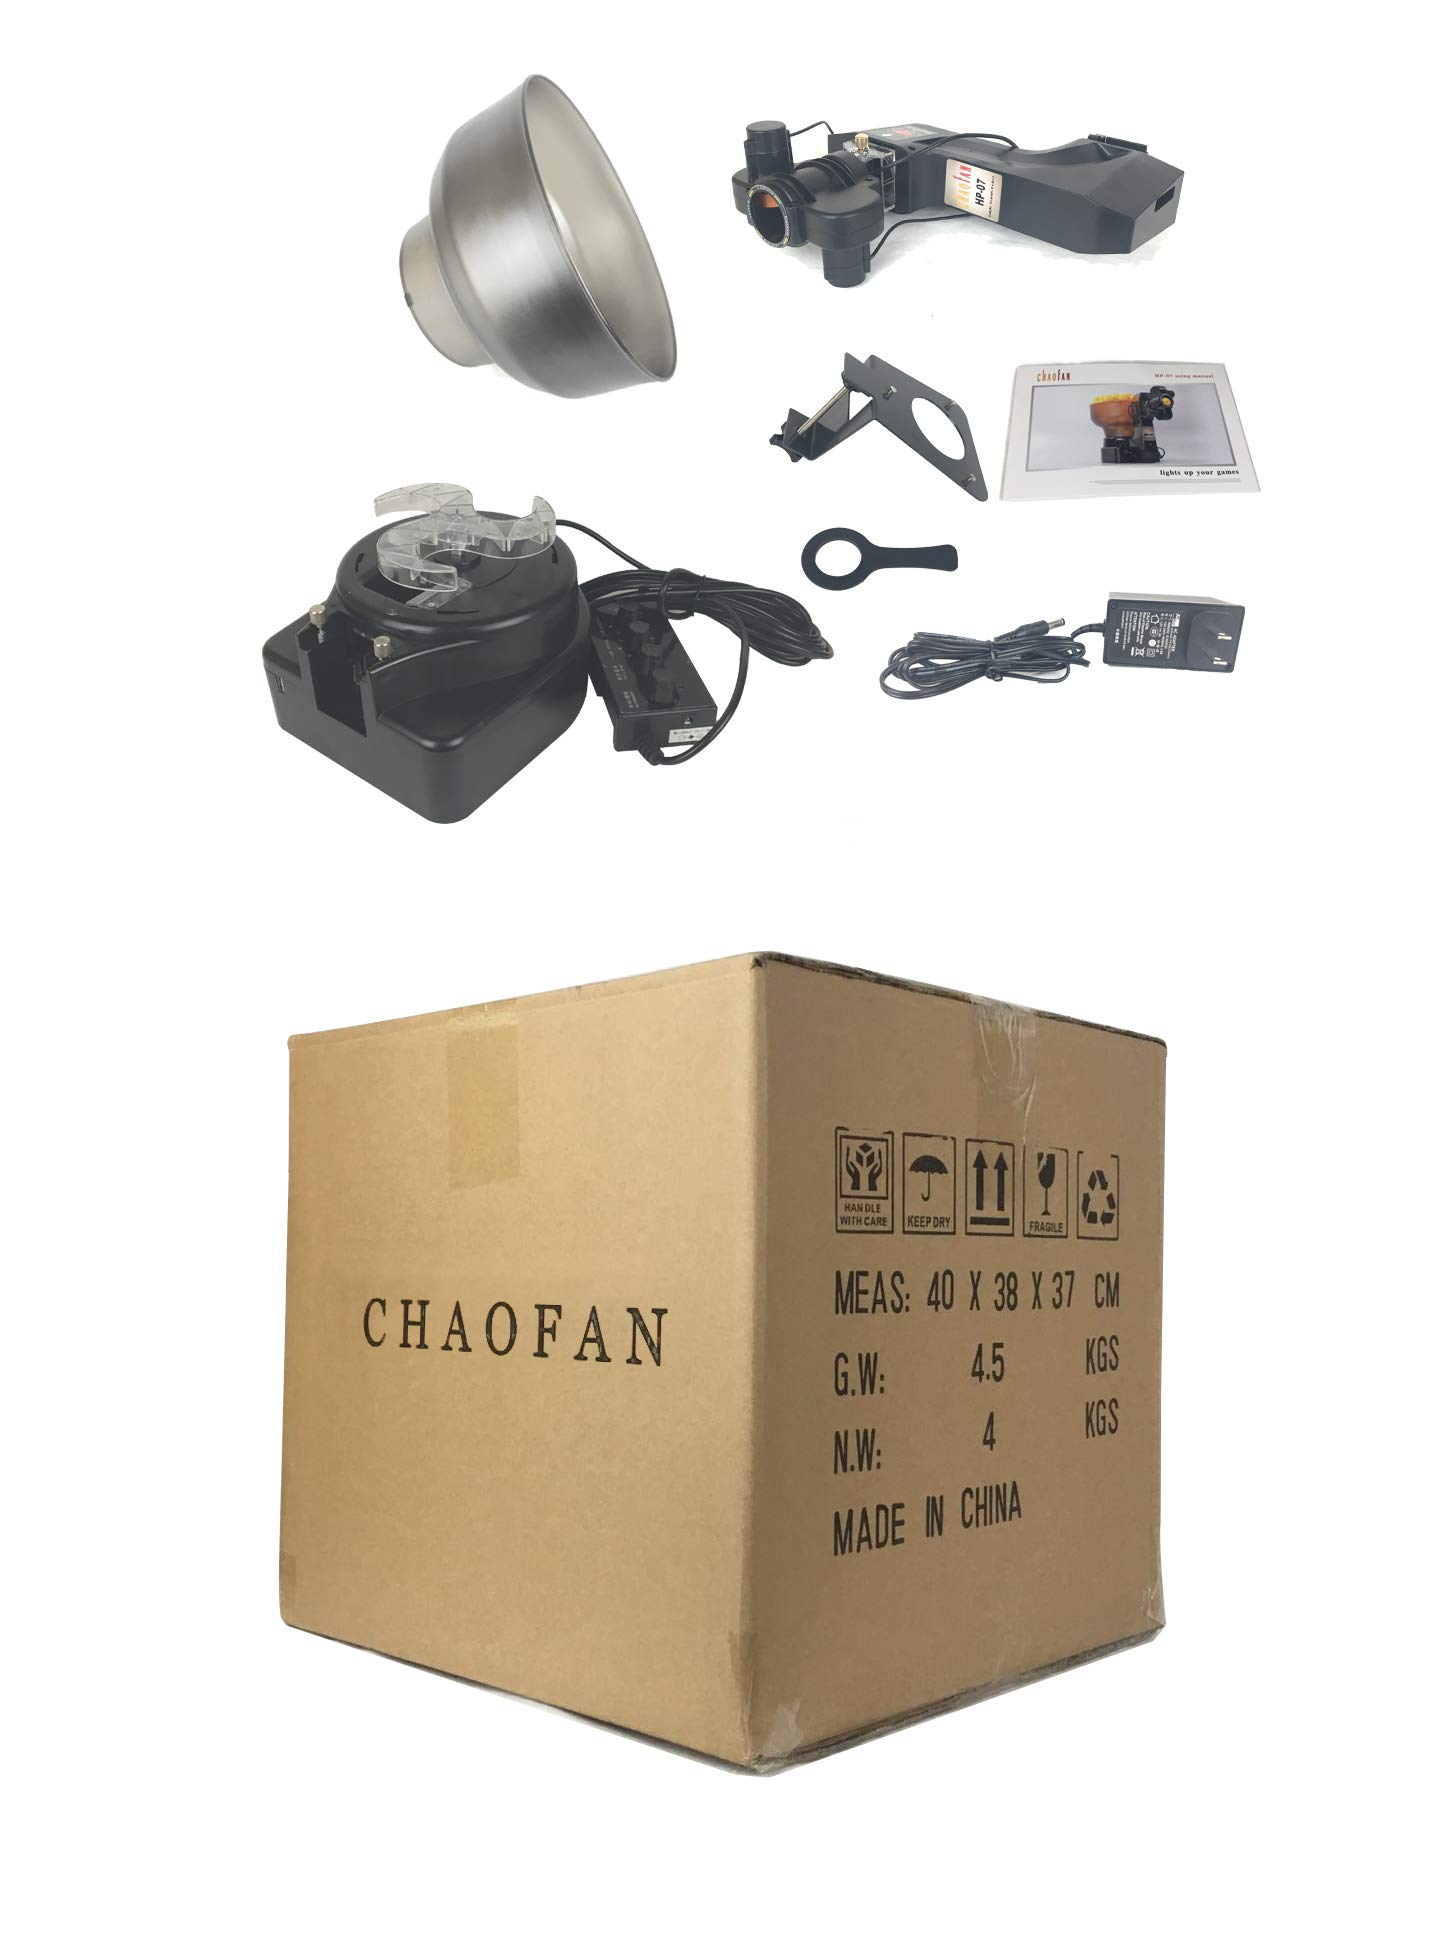 CHAOFAN 36 Spins Ping Pong Ball Machine with Automatic Table Tennis Machine for Training